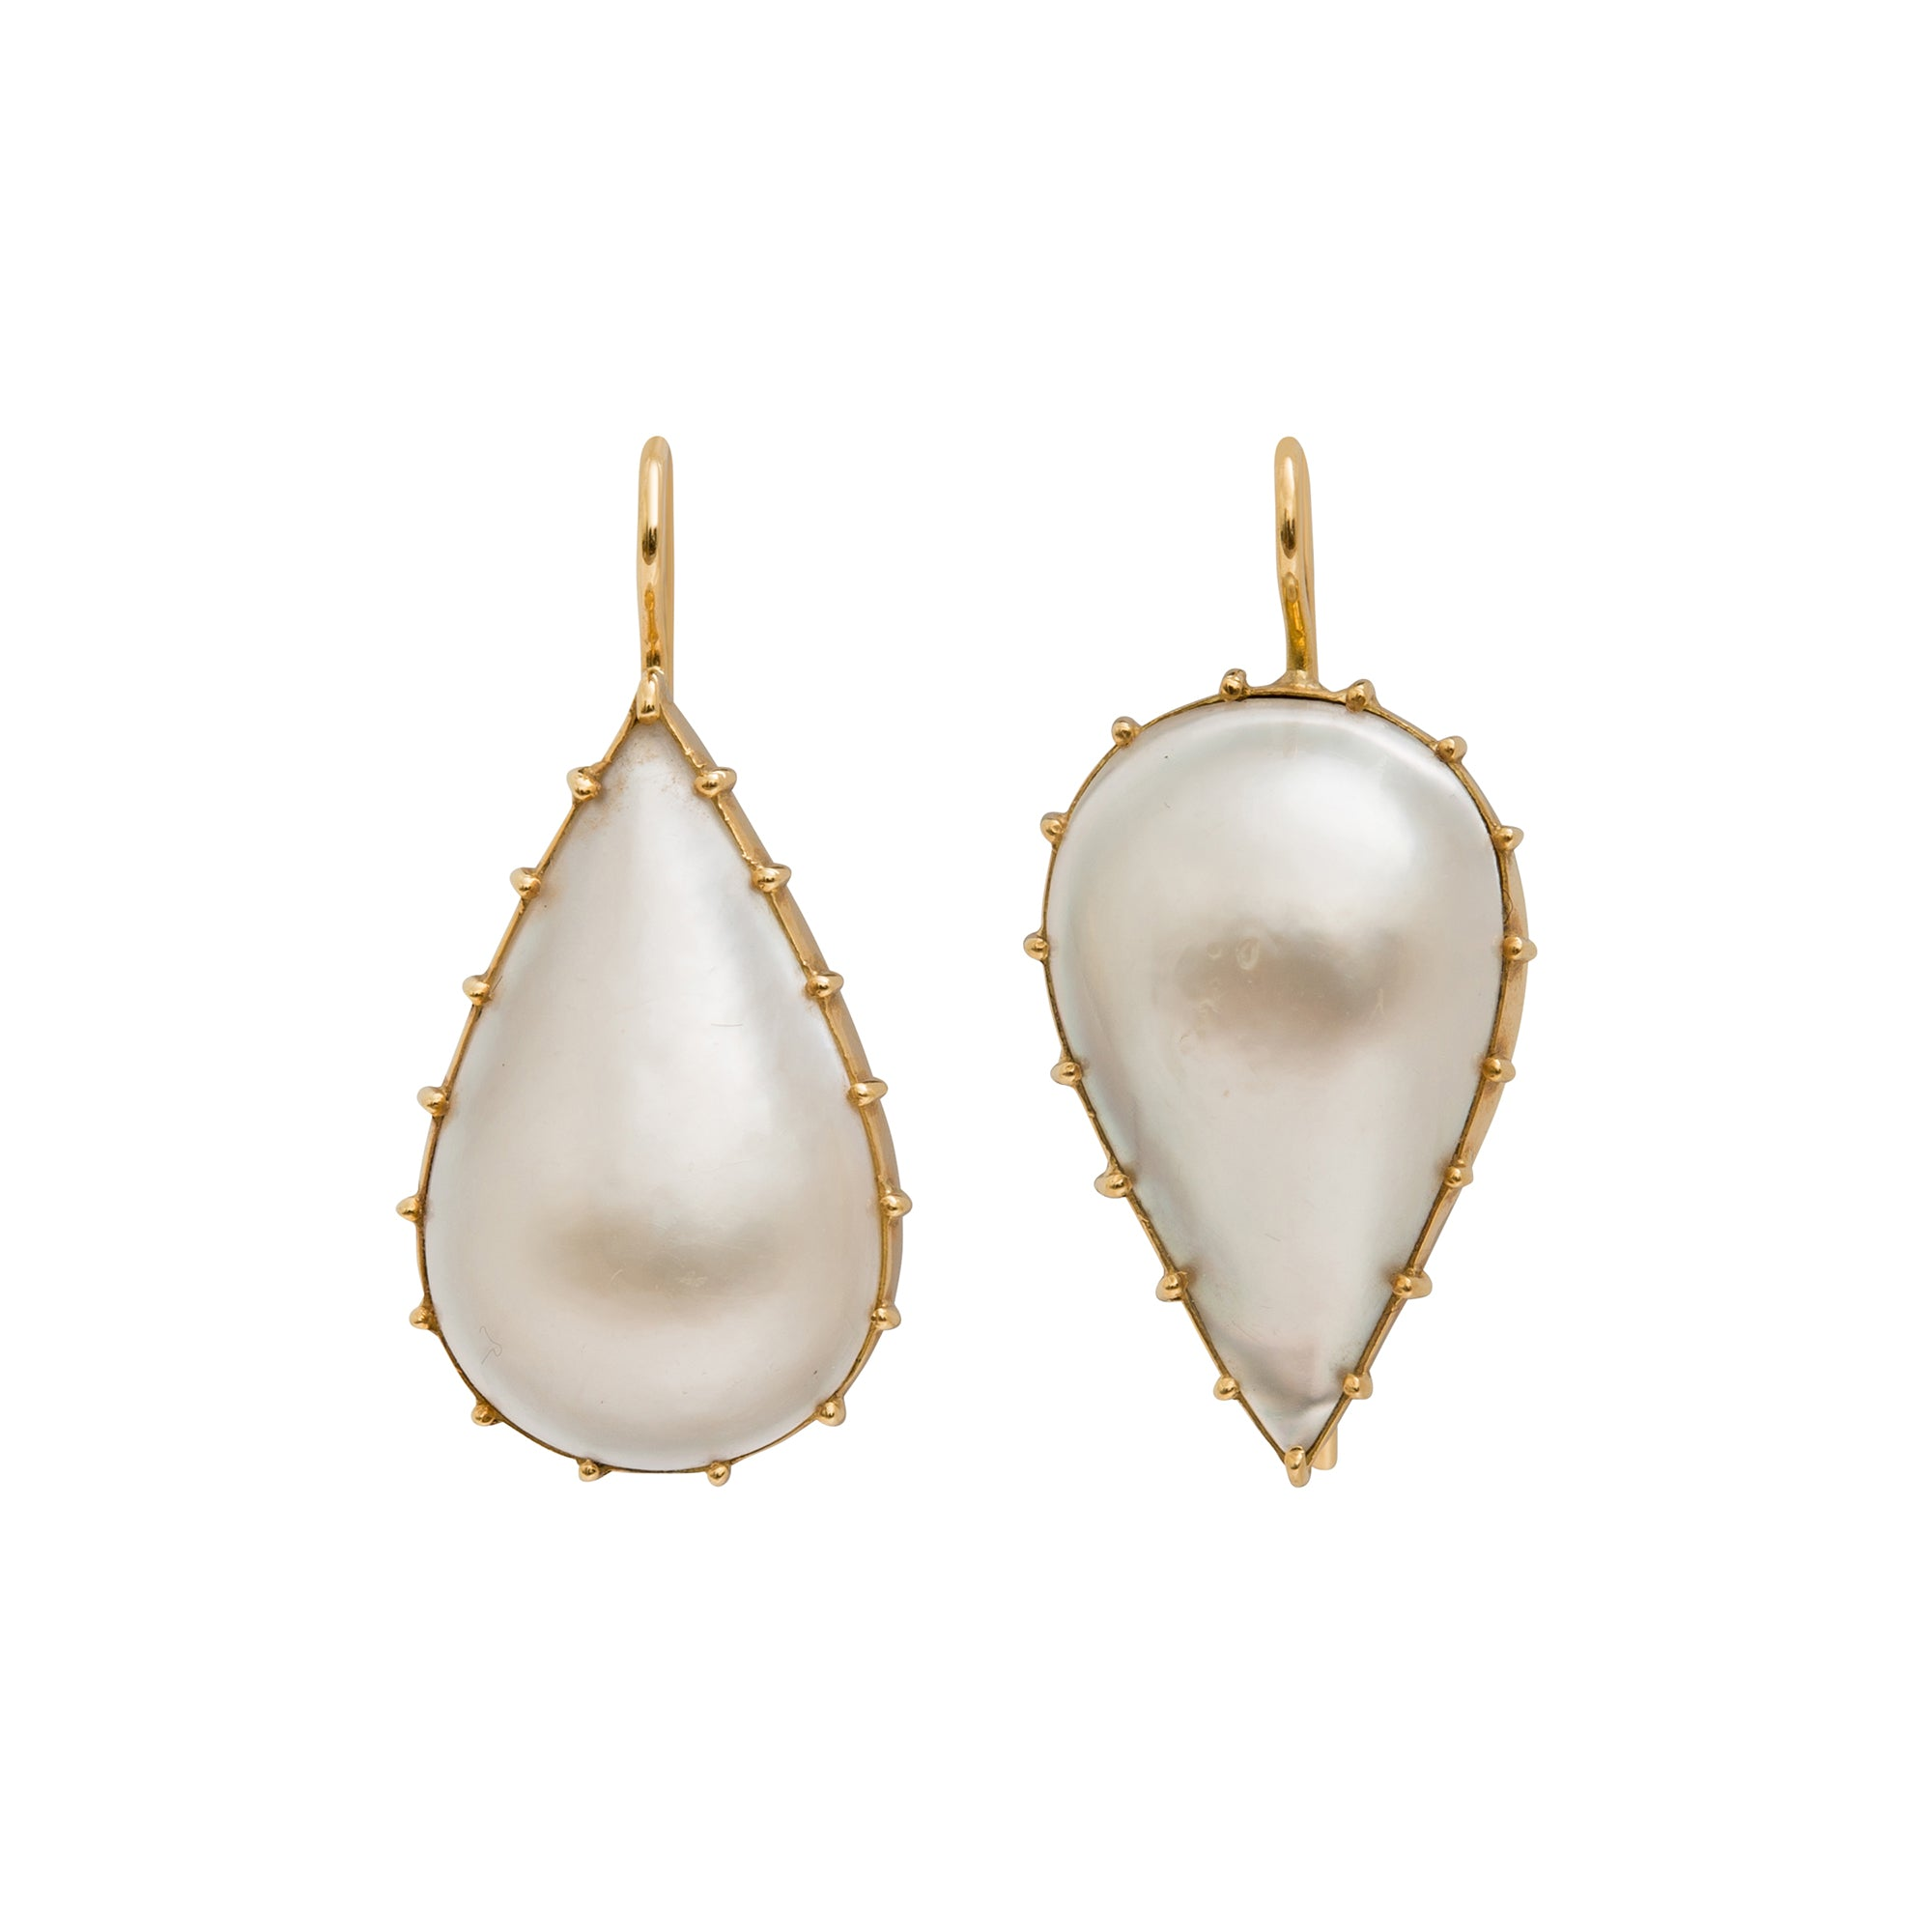 Mabe Pearl Earrings by Renee Lewis for Broken English Jewelry